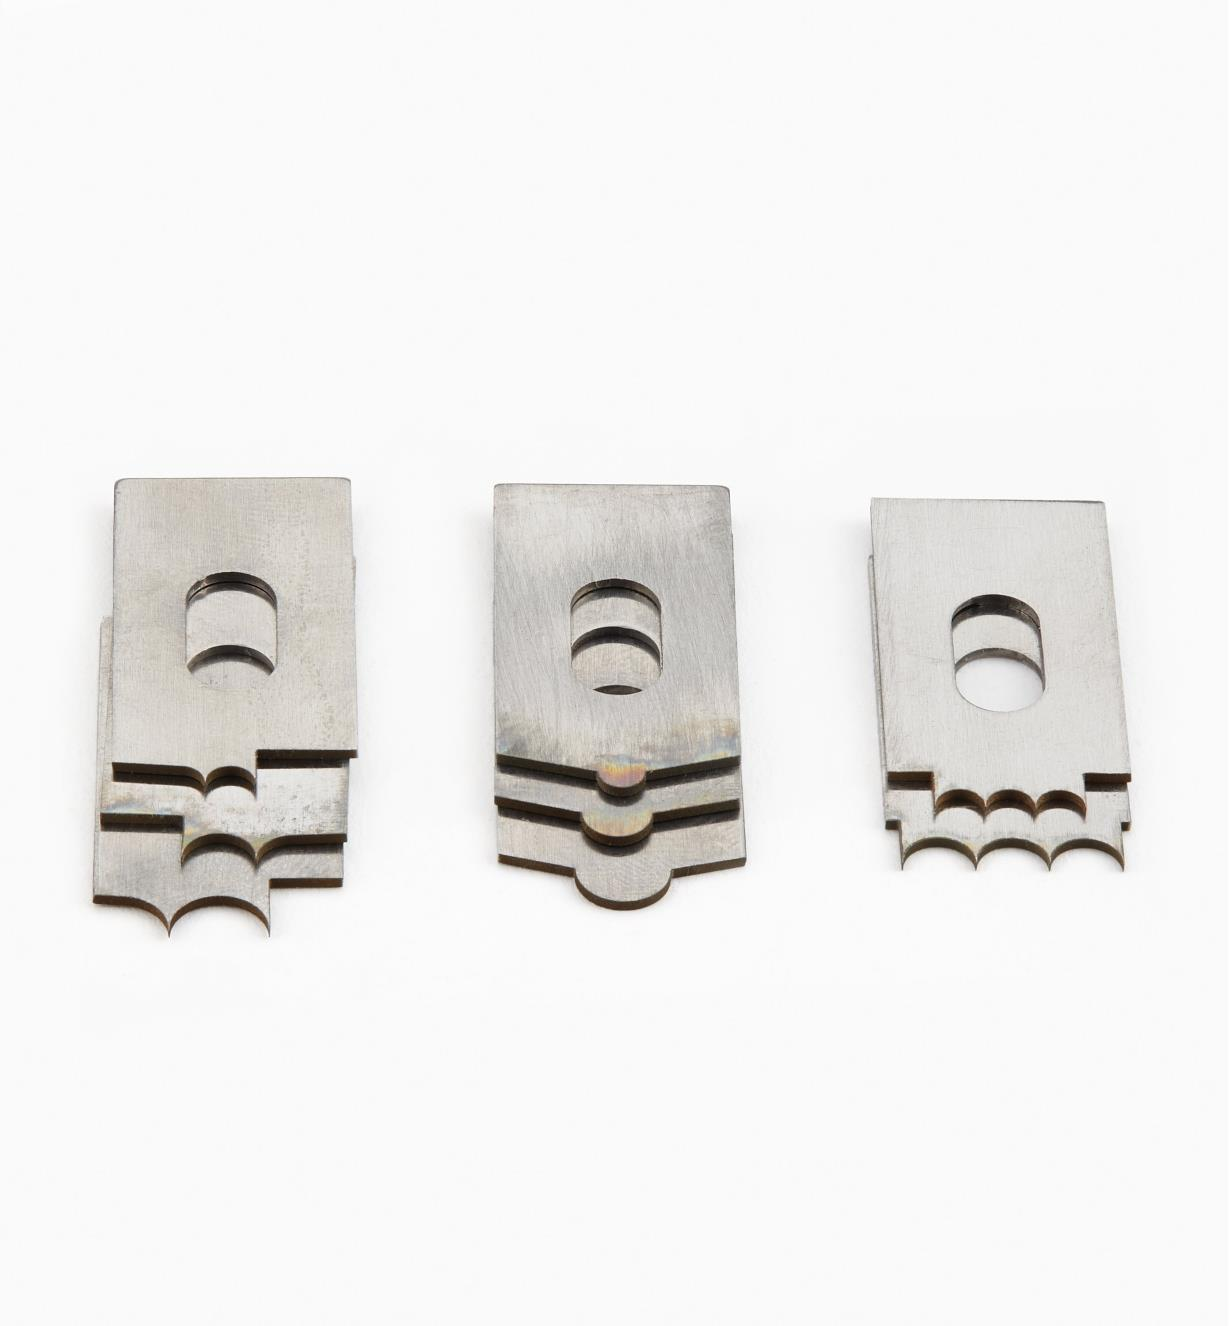 05P0410 - Master Set of 8 Cutters*